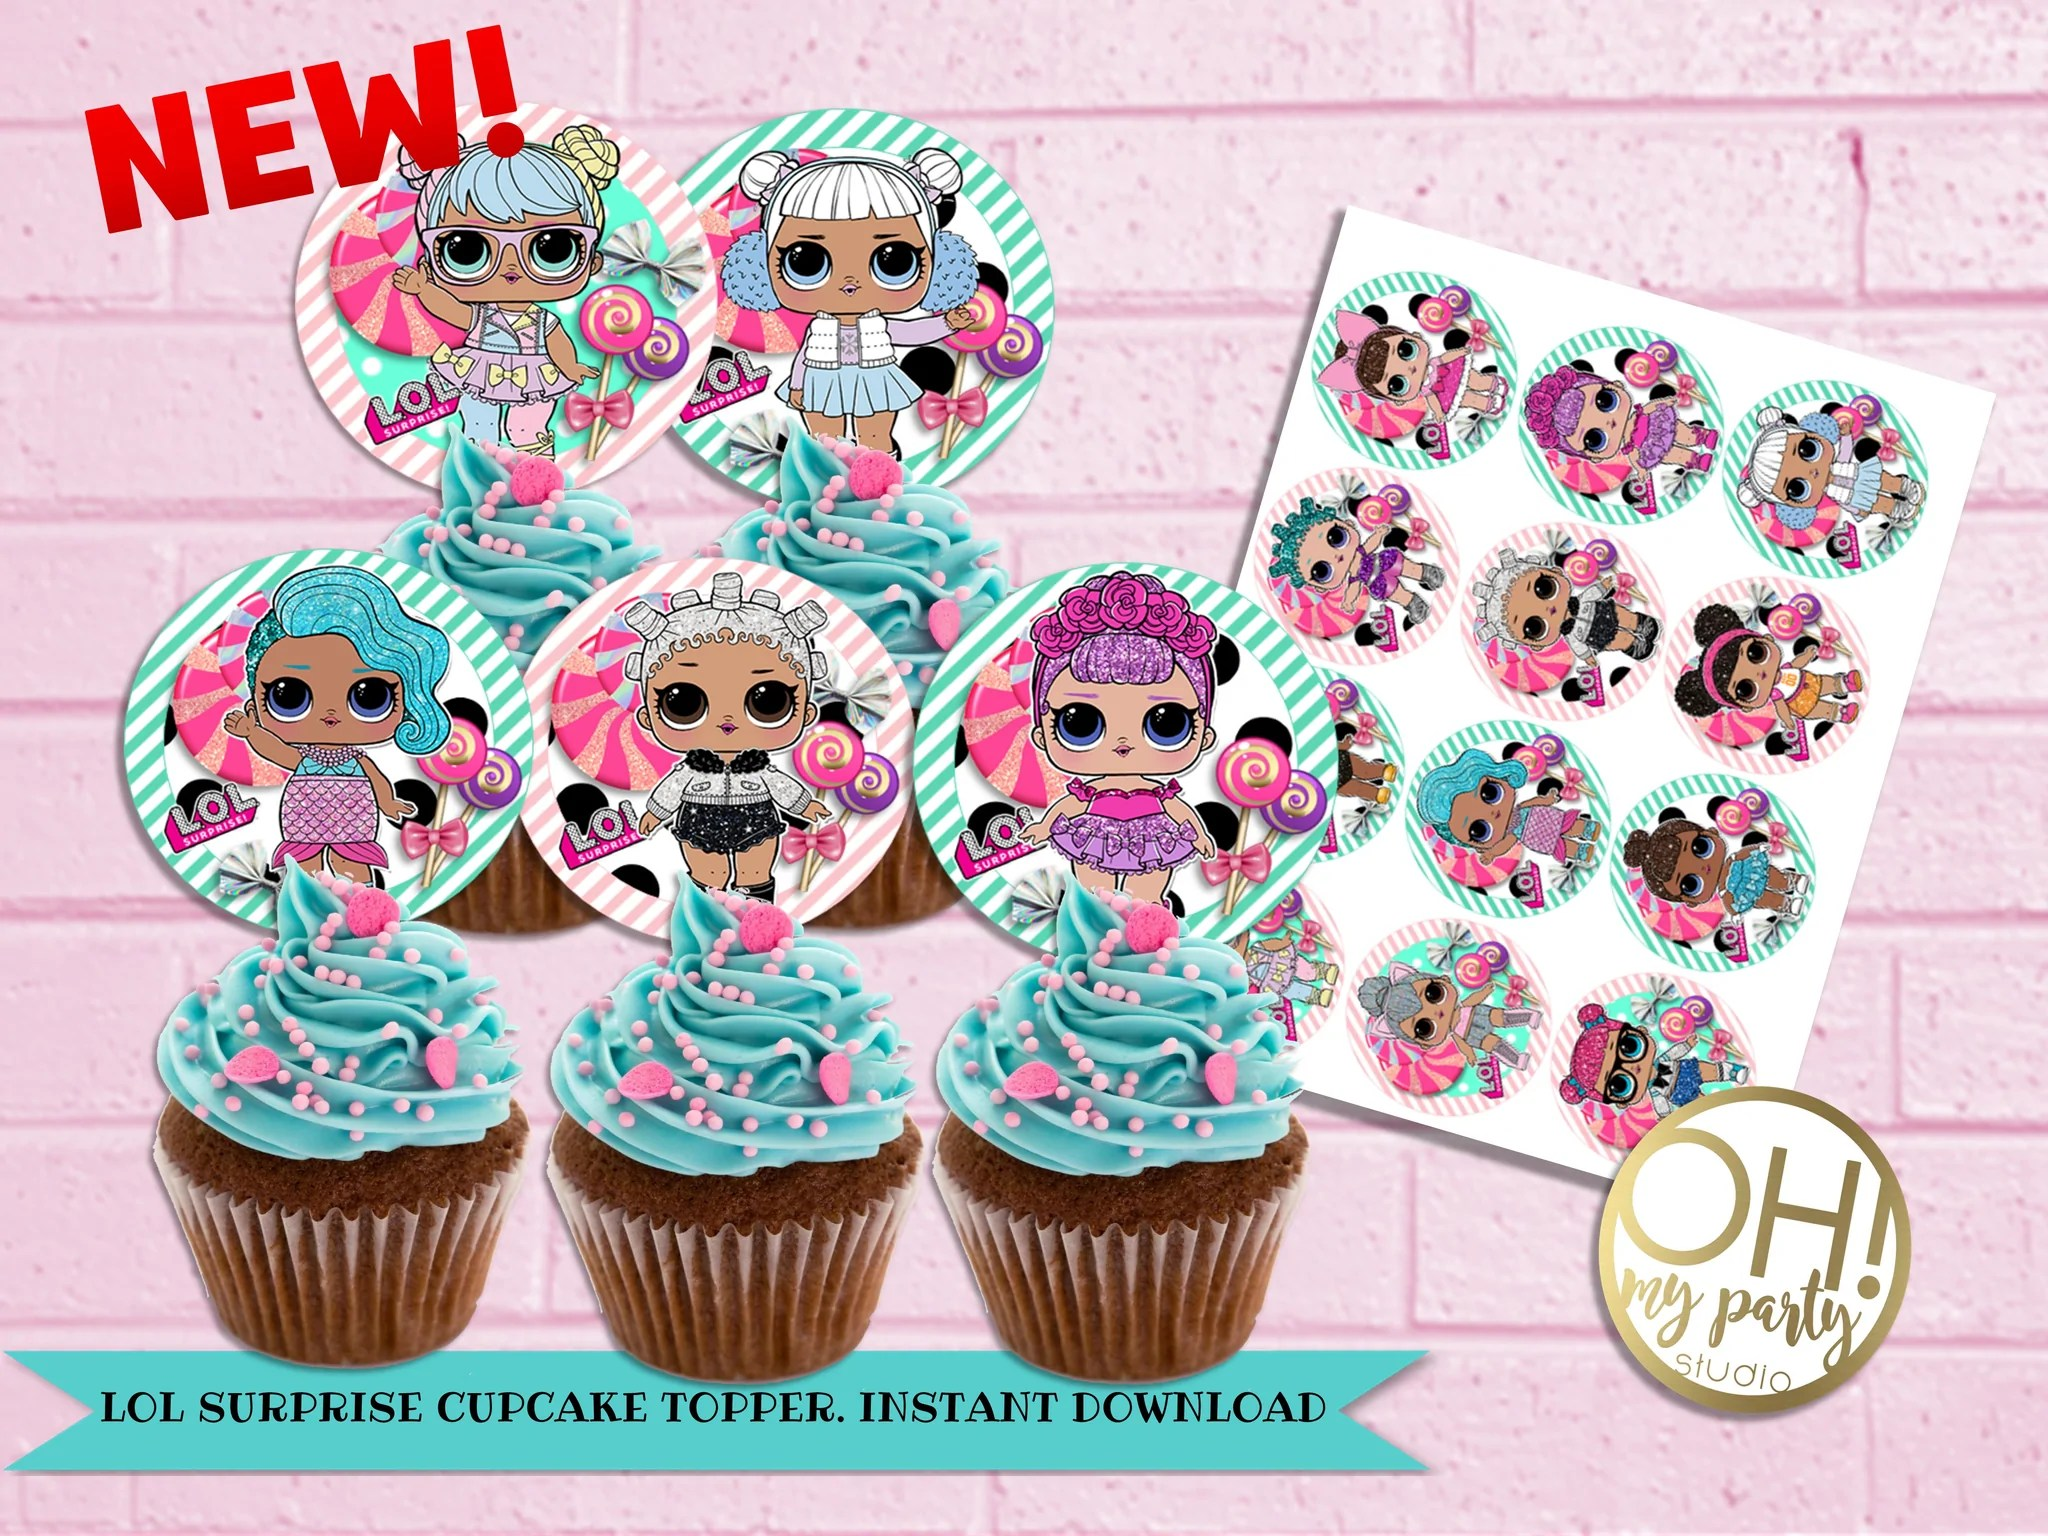 Lol Dolls Cupcake Toppers Instant Download Oh My Party Studio